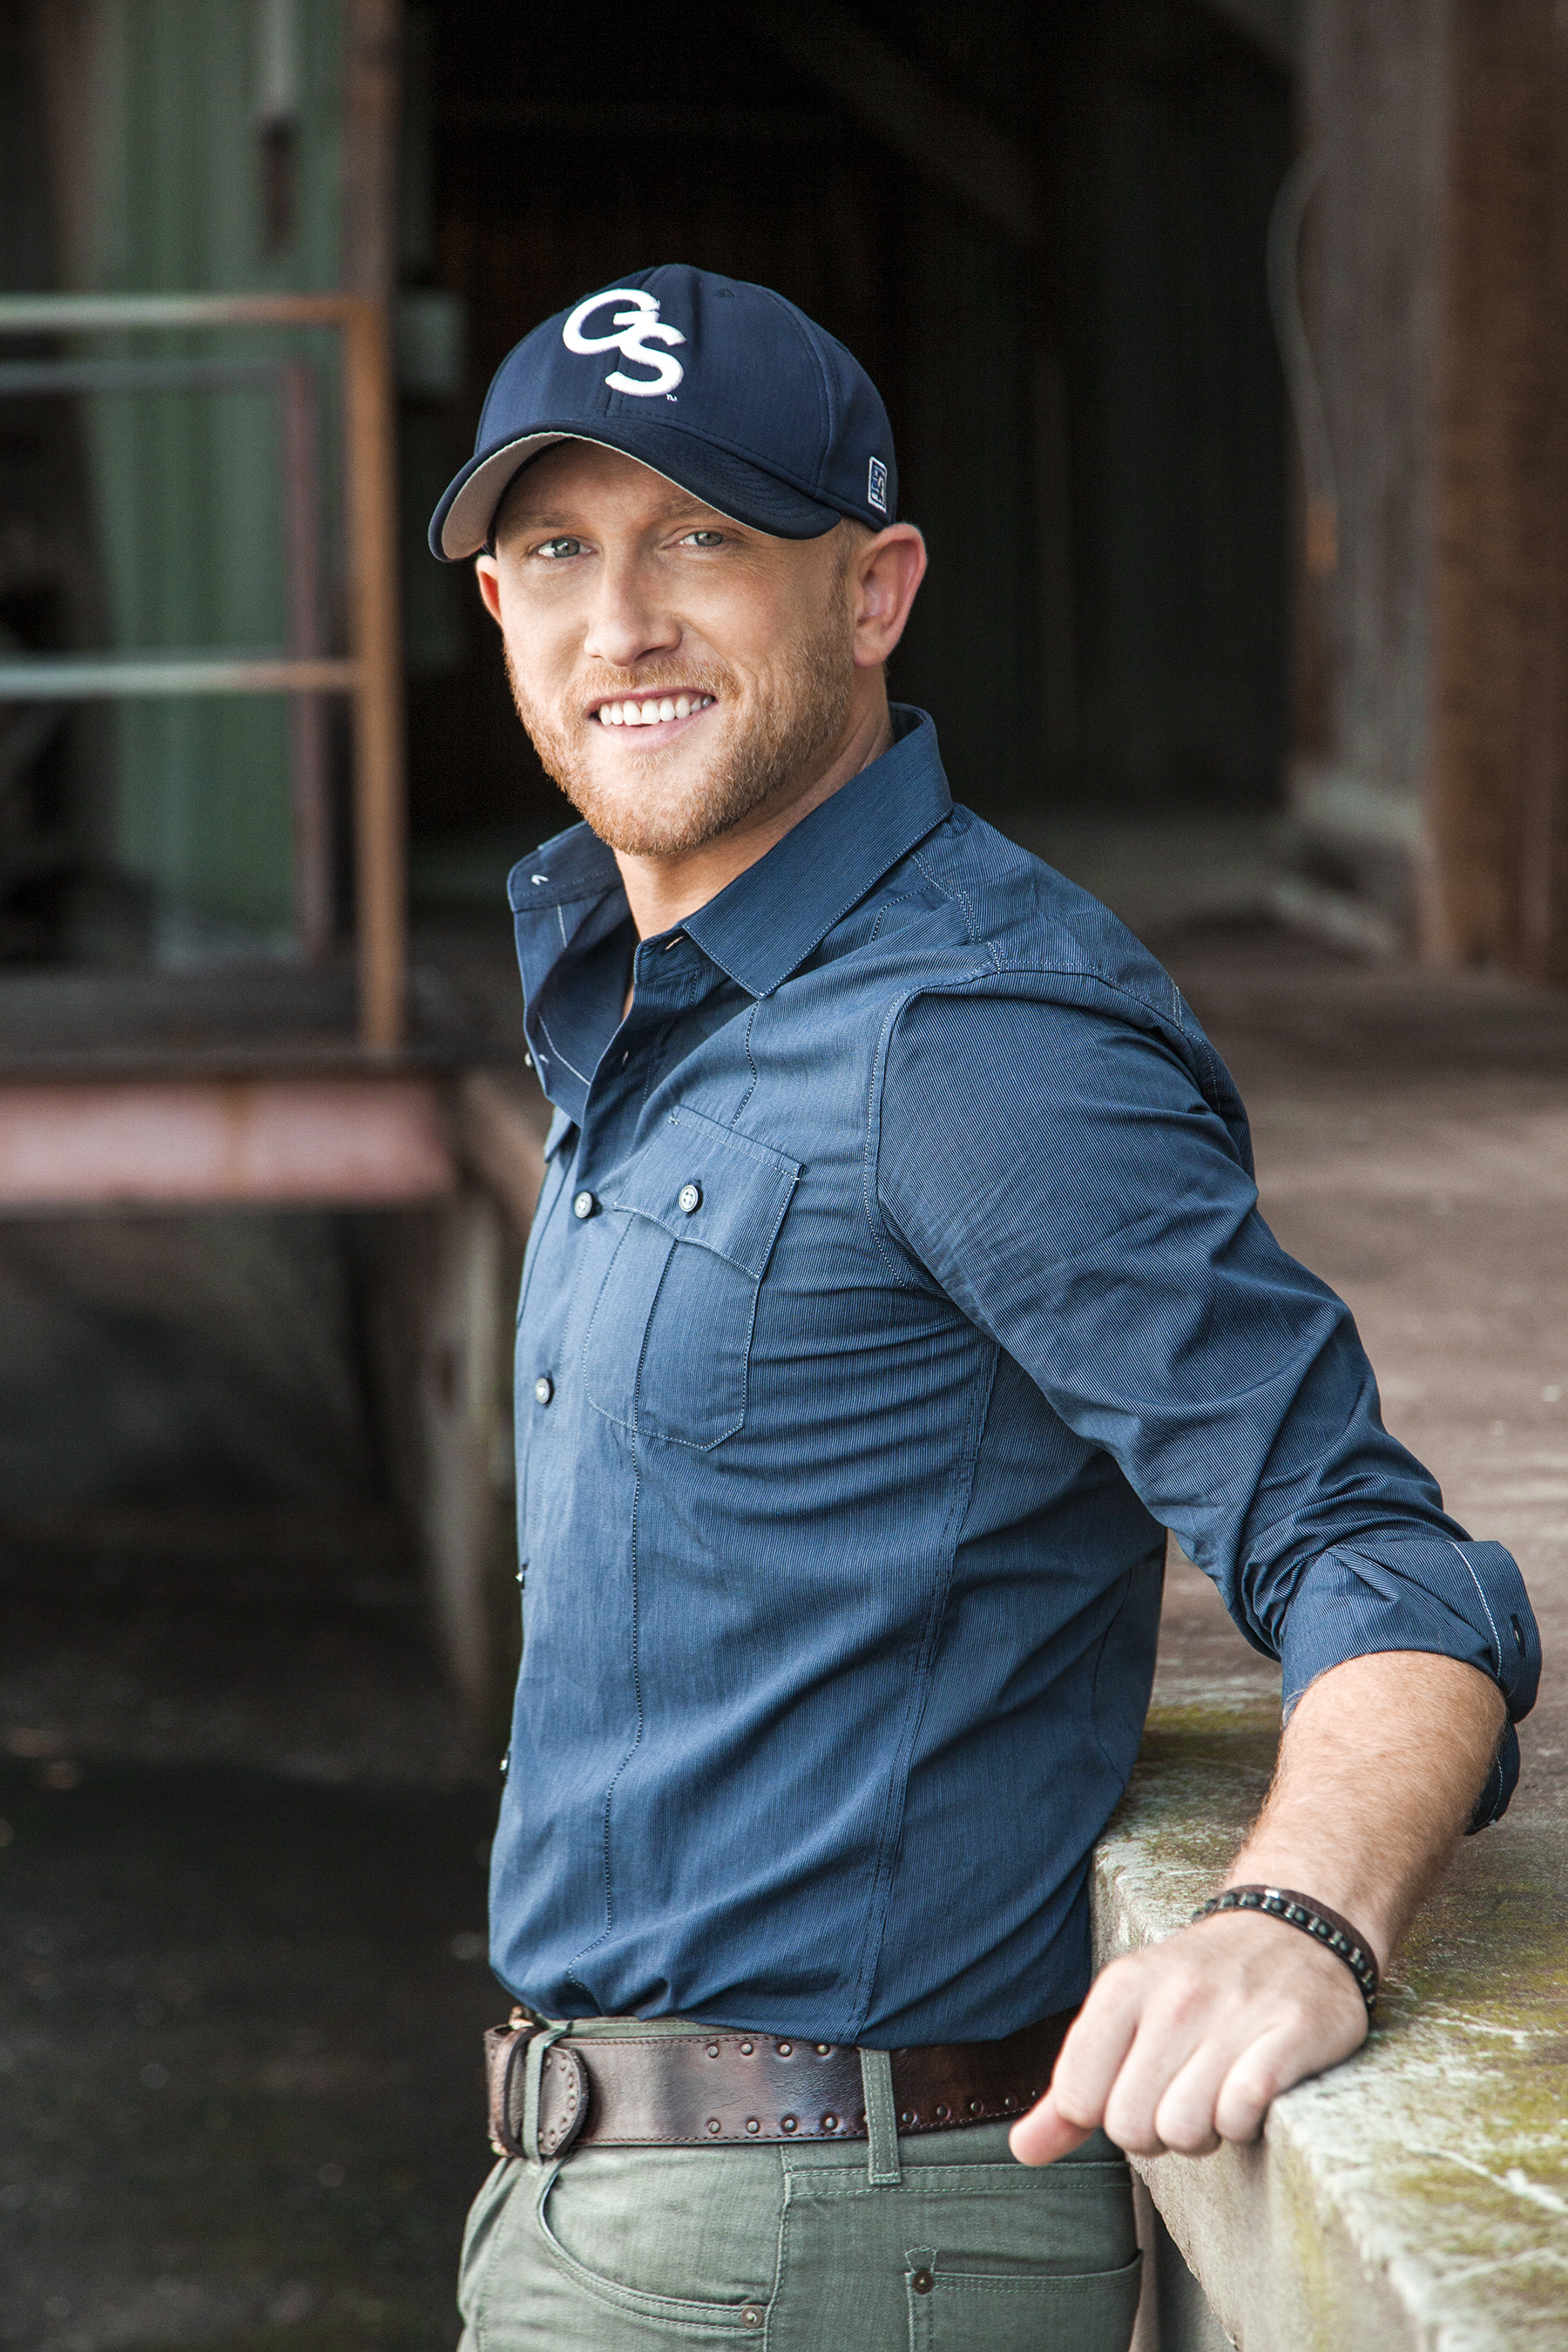 Platinum-selling singer/songwriter, Cole Swindell joins the Diamond Resorts Ambassador team and delivers exciting concert experiences to members. (Photo: Business Wire)